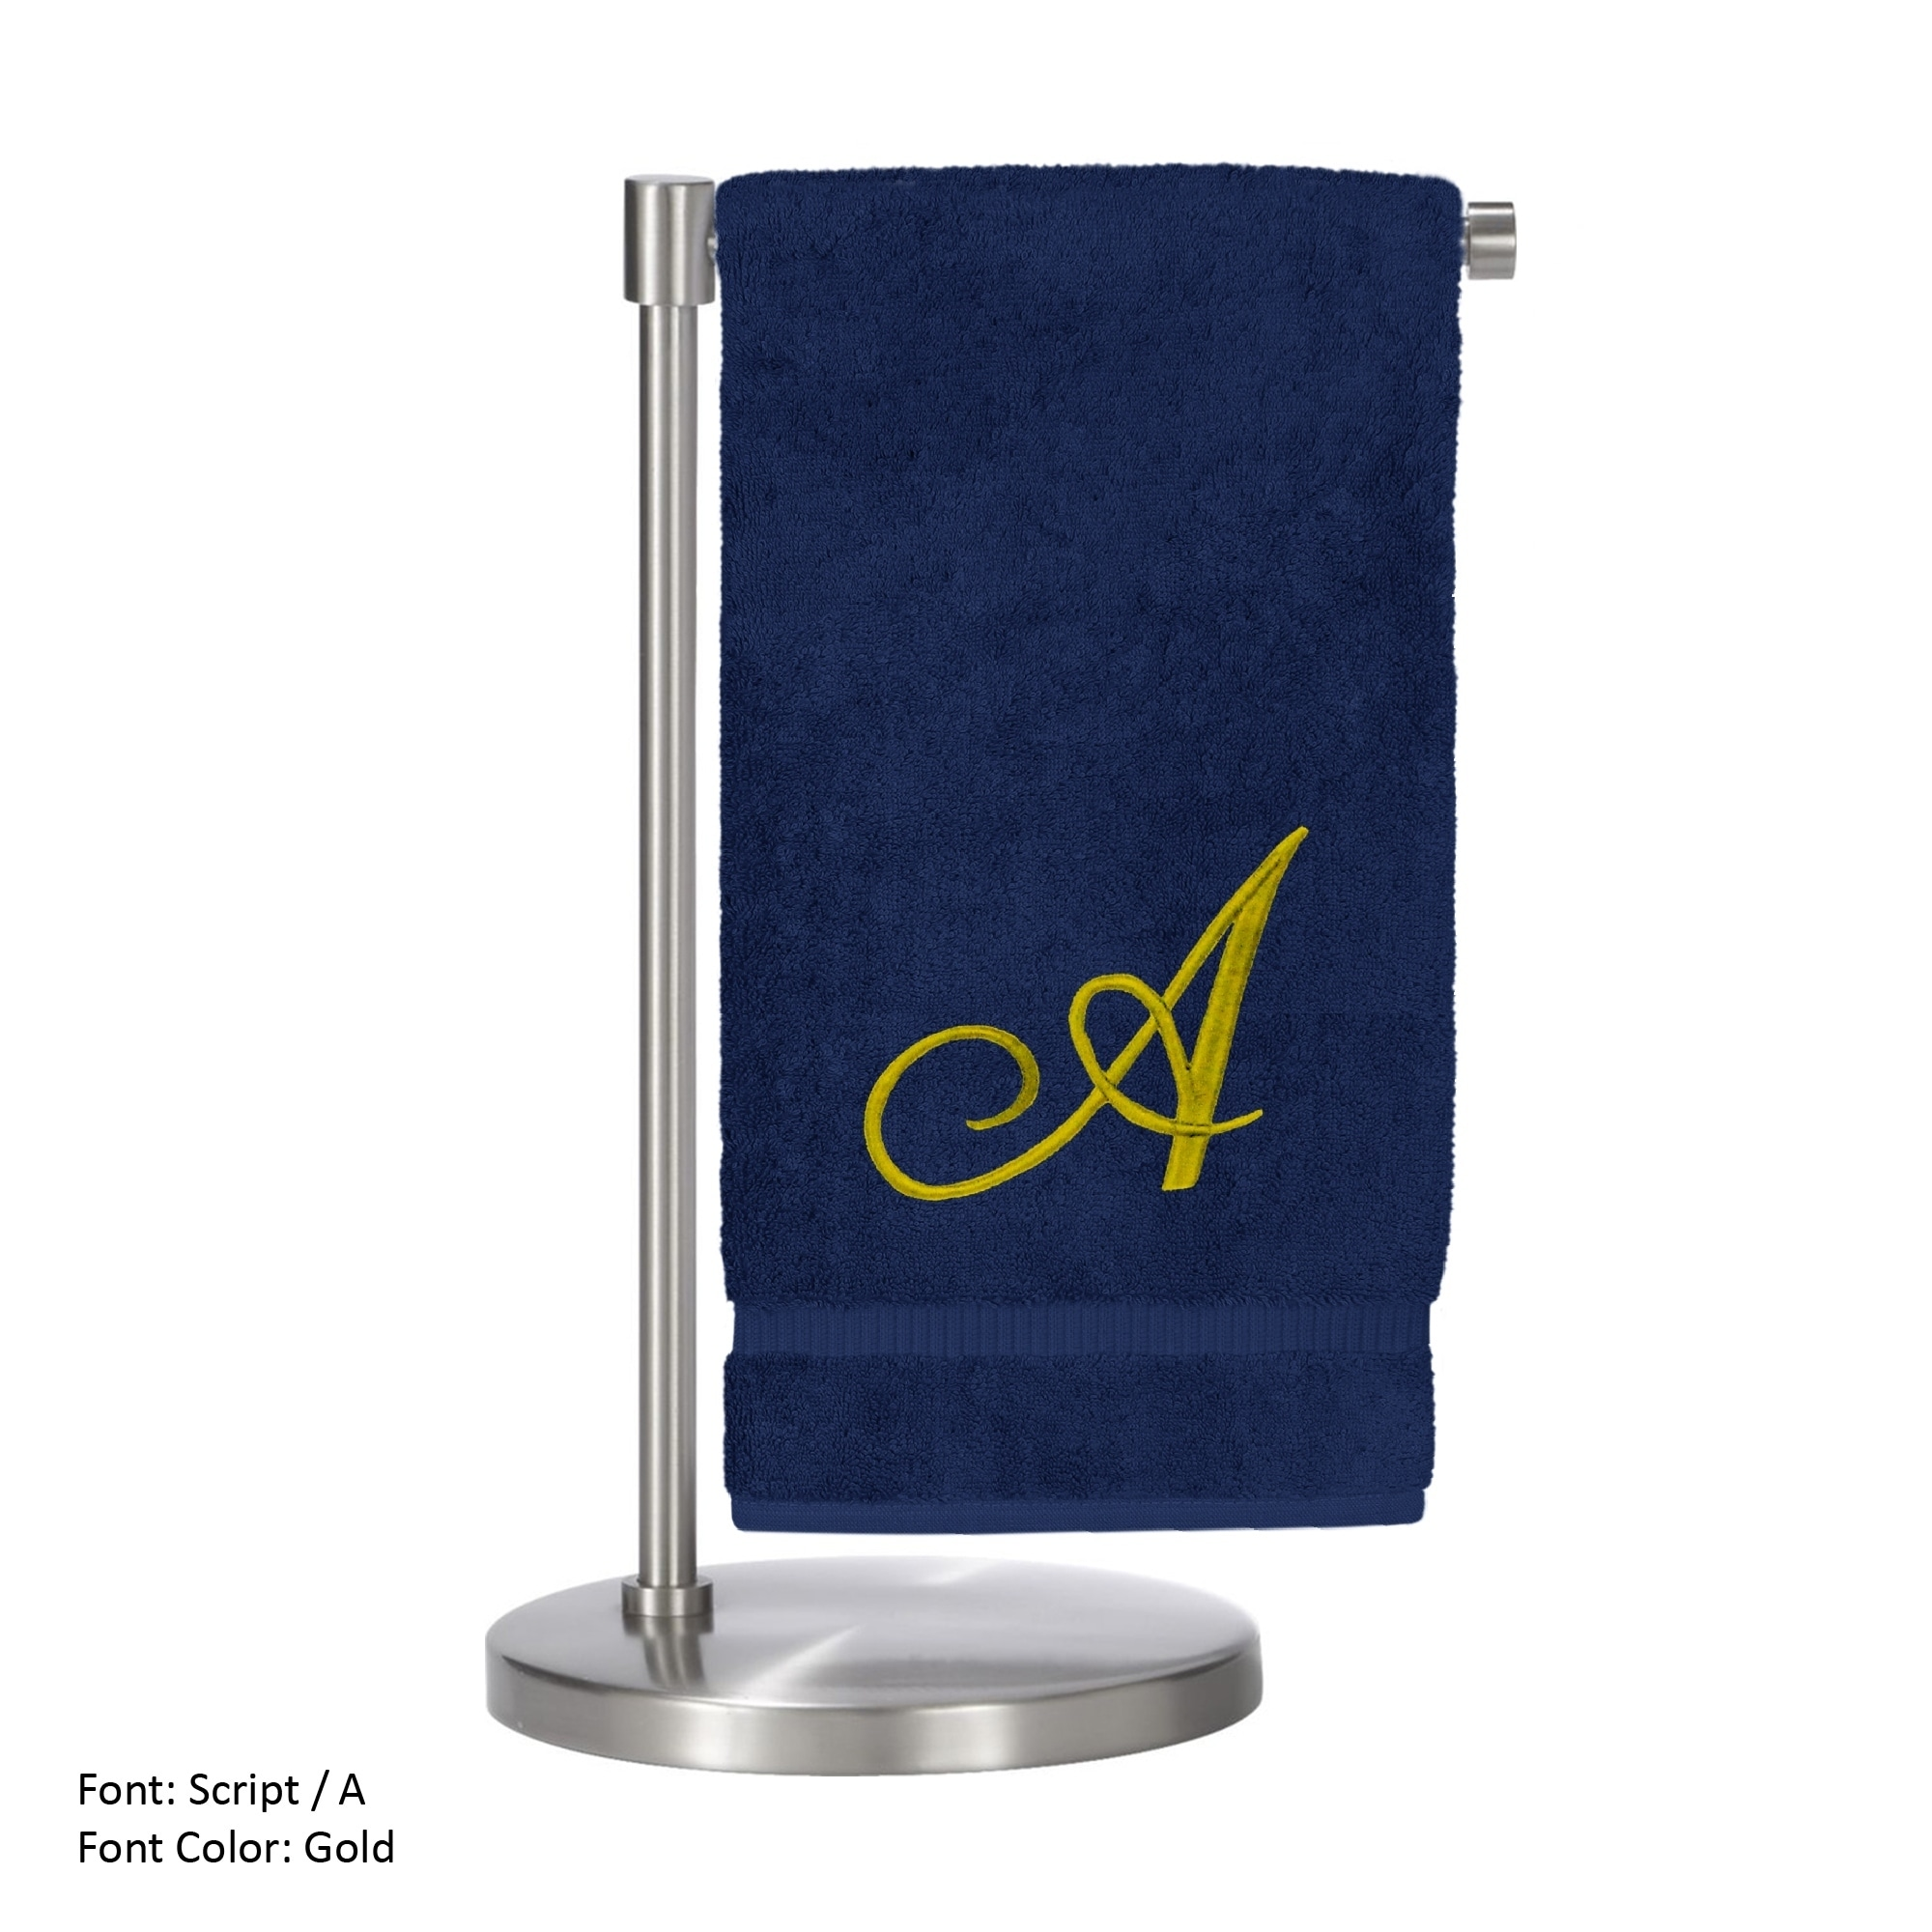 Monogrammed Bath Towel, Personalized Gift, 27 x 54 Inches - Set of 2 - Gold Script Embroidered Towel - 100% Turkish Cotton - Soft Terry Finish - For Bathroom, or Spa - Script A Navy Towels